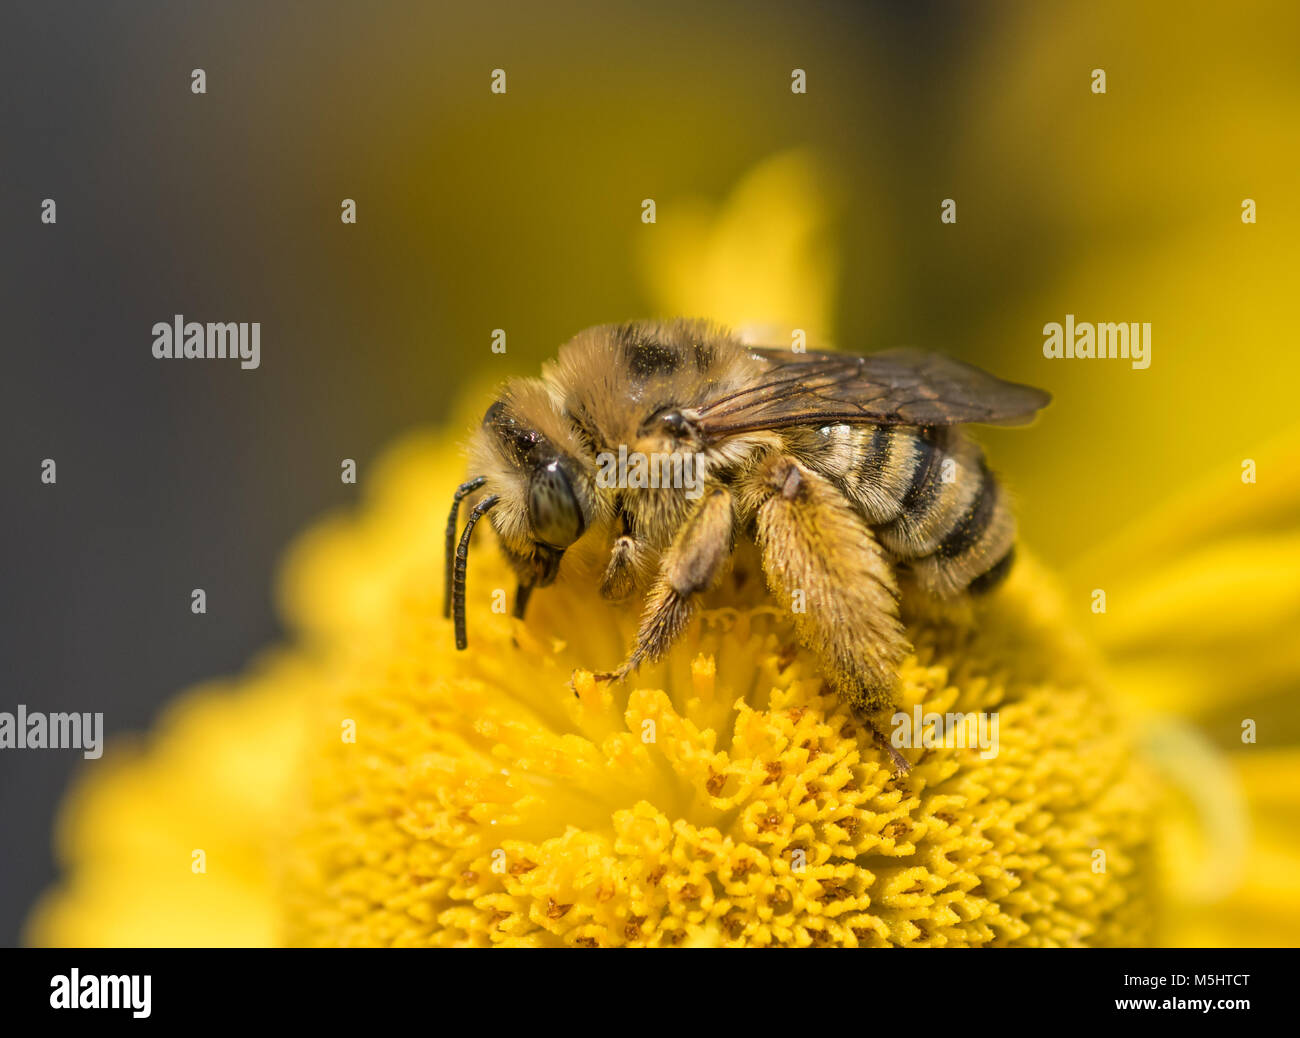 Female Long-horned Bee (Melissodes) feeding on and pollinating a yellow Sneezeweed flower (Helenium autumnale) - Stock Image